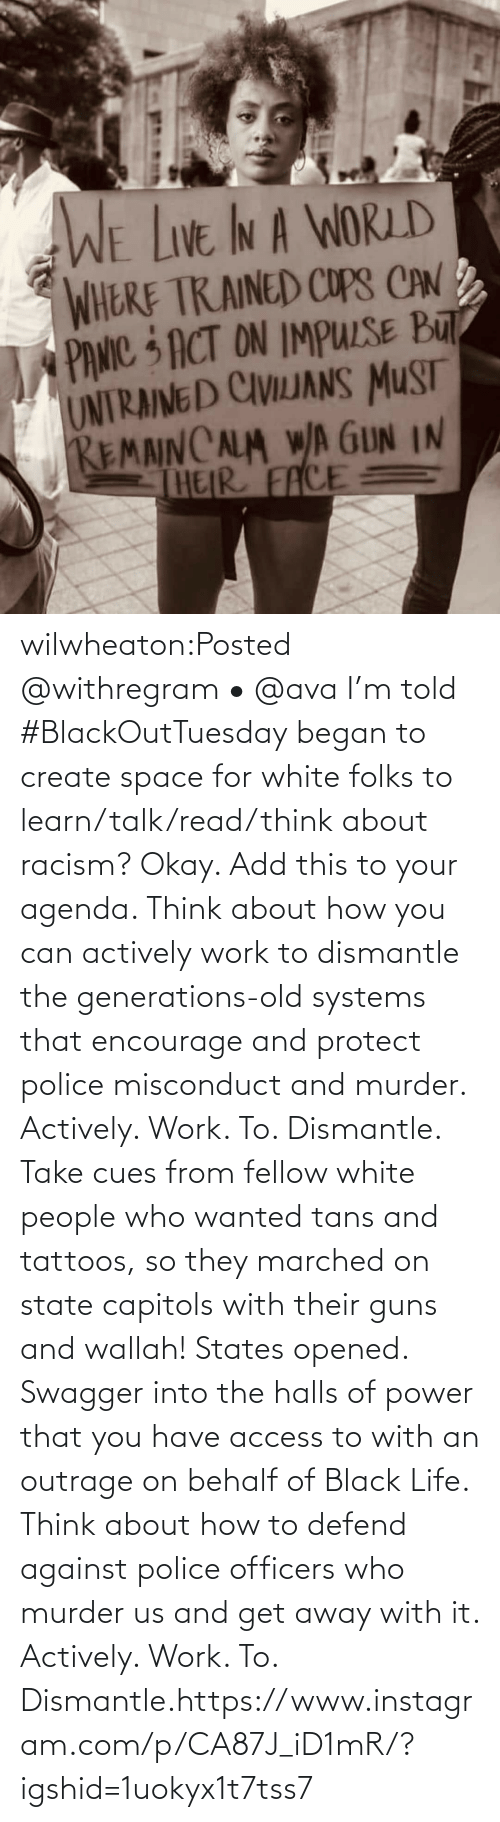 White: wilwheaton:Posted @withregram • @ava I'm told #BlackOutTuesday began to create space for white folks to learn/talk/read/think about racism? Okay. Add this to your agenda. Think about how you can actively work to dismantle the generations-old systems that encourage and protect police misconduct and murder. Actively. Work. To. Dismantle. Take cues from fellow white people who wanted tans and tattoos, so they marched on state capitols with their guns and wallah! States opened. Swagger into the halls of power that you have access to with an outrage on behalf of Black Life. Think about how to defend against police officers who murder us and get away with it. Actively. Work. To. Dismantle.https://www.instagram.com/p/CA87J_iD1mR/?igshid=1uokyx1t7tss7